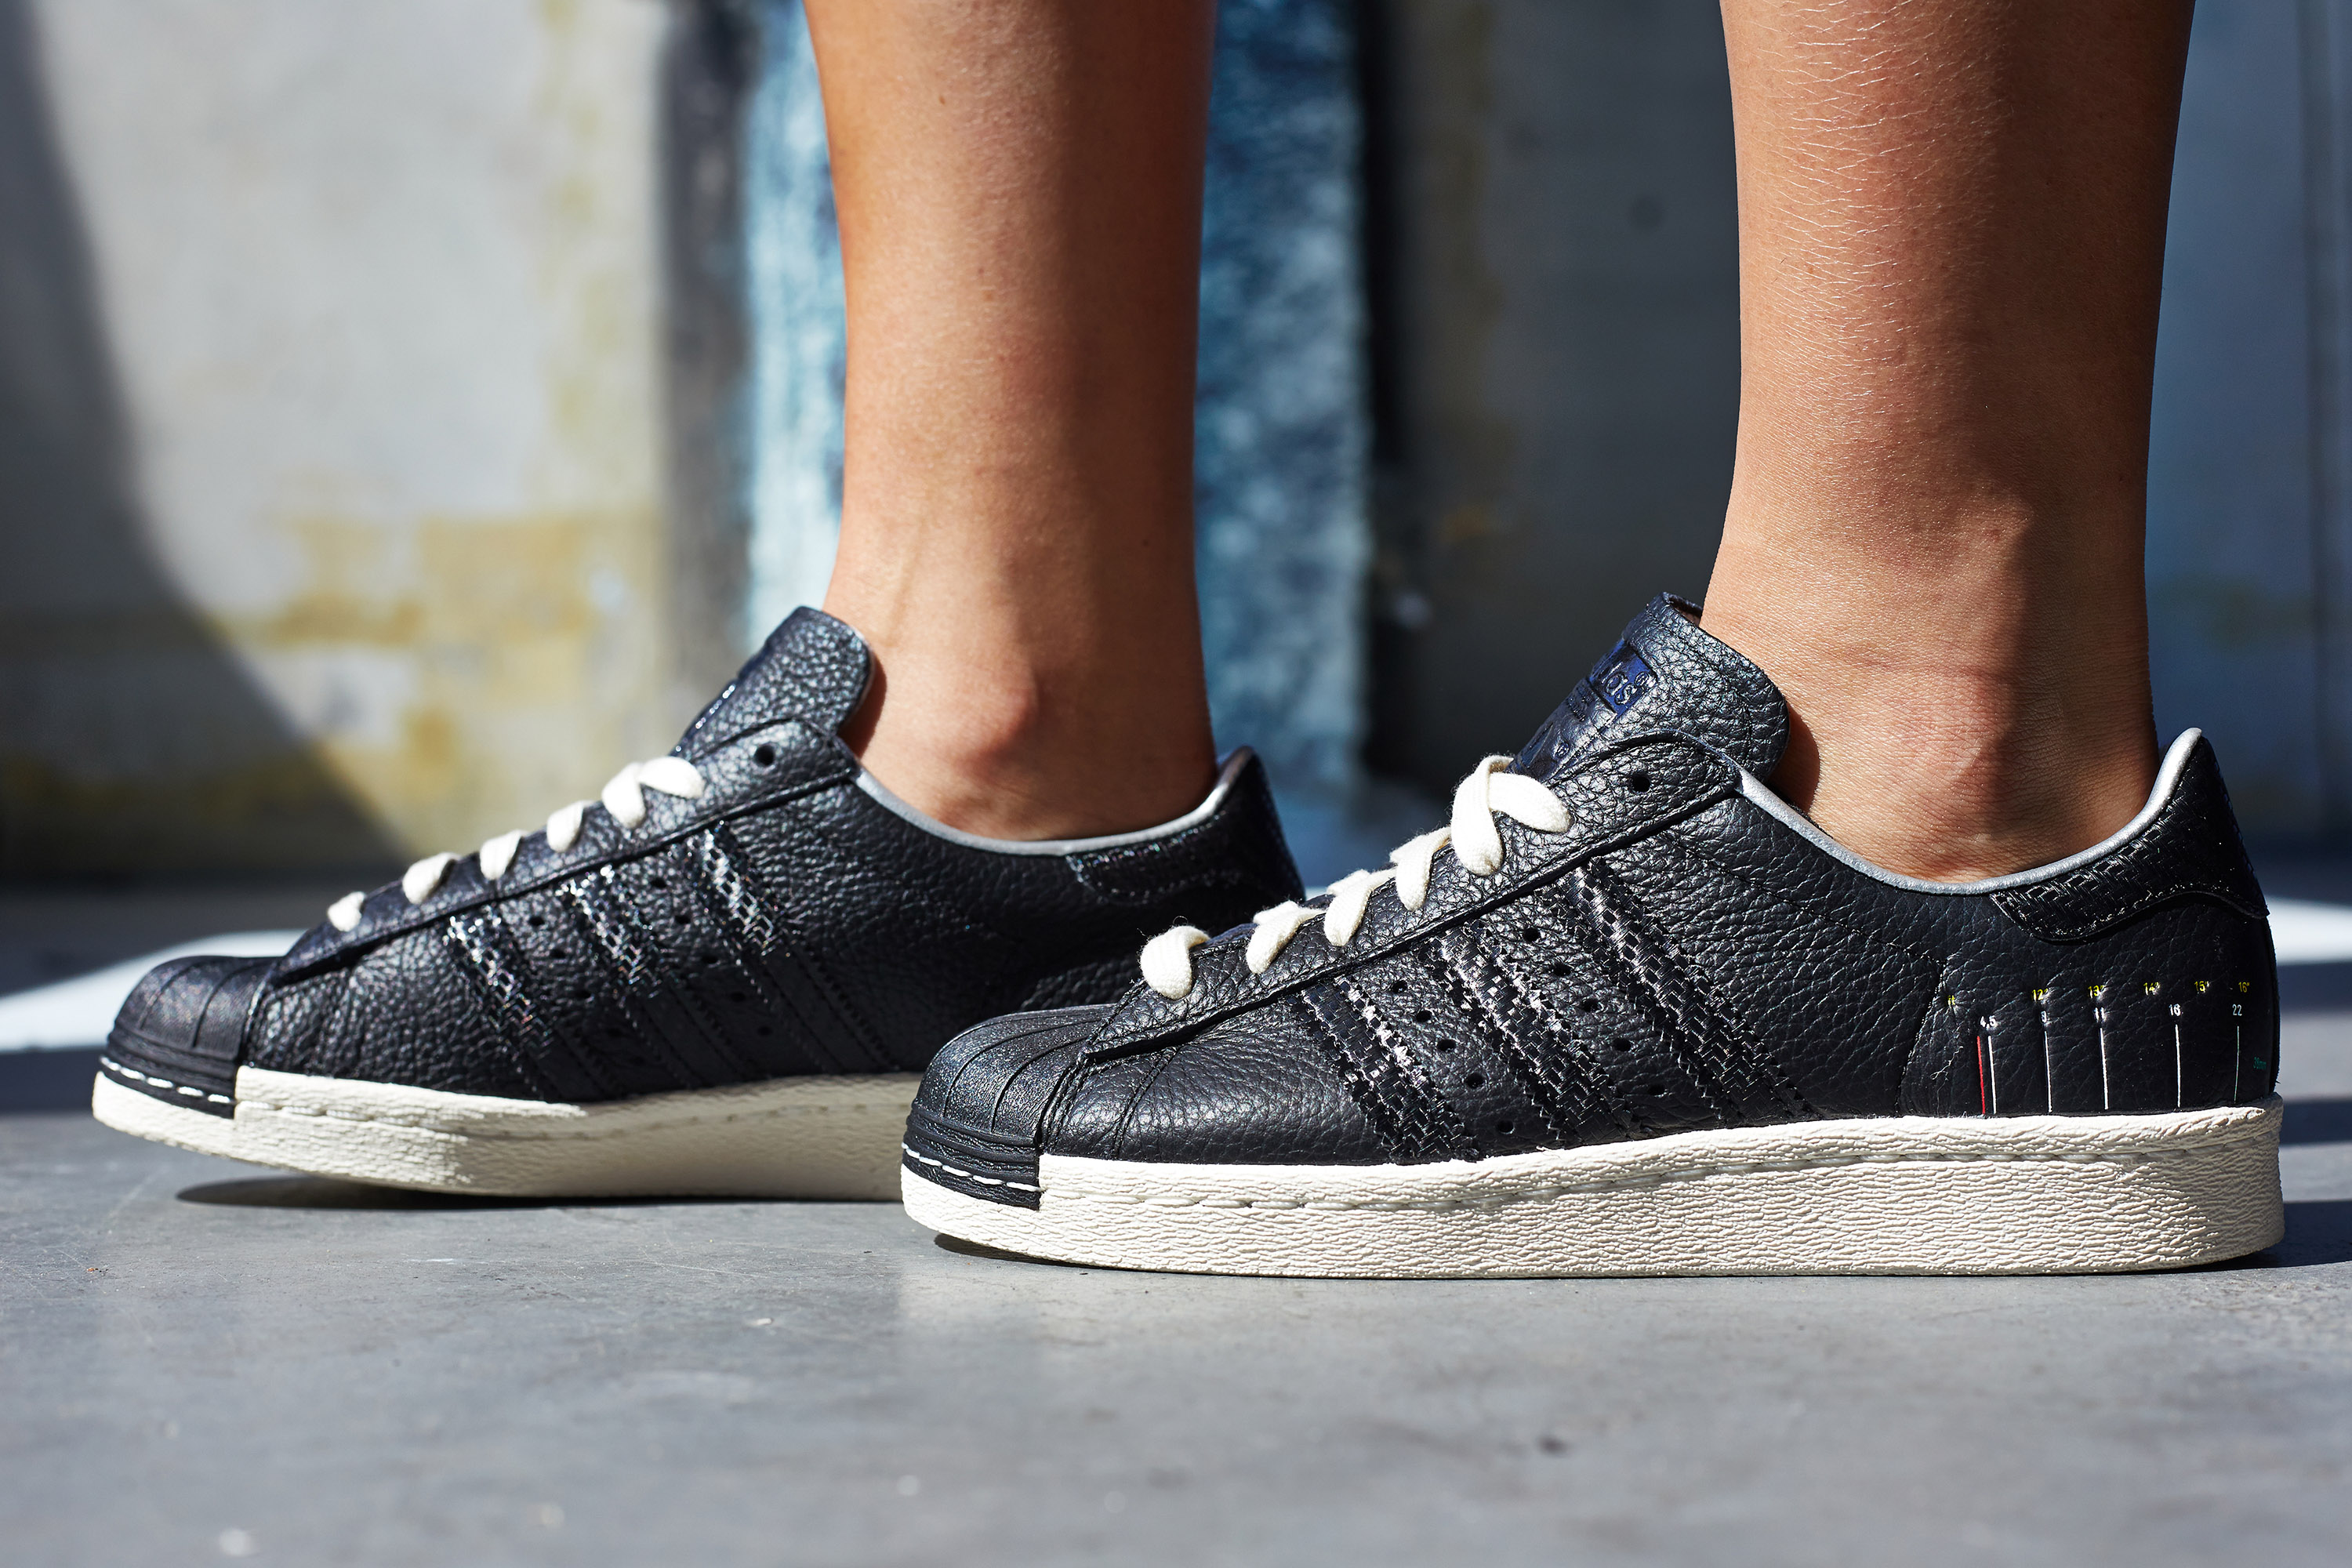 Cheap Adidas Superstar Boost Bape X Neighborhood - BEVI